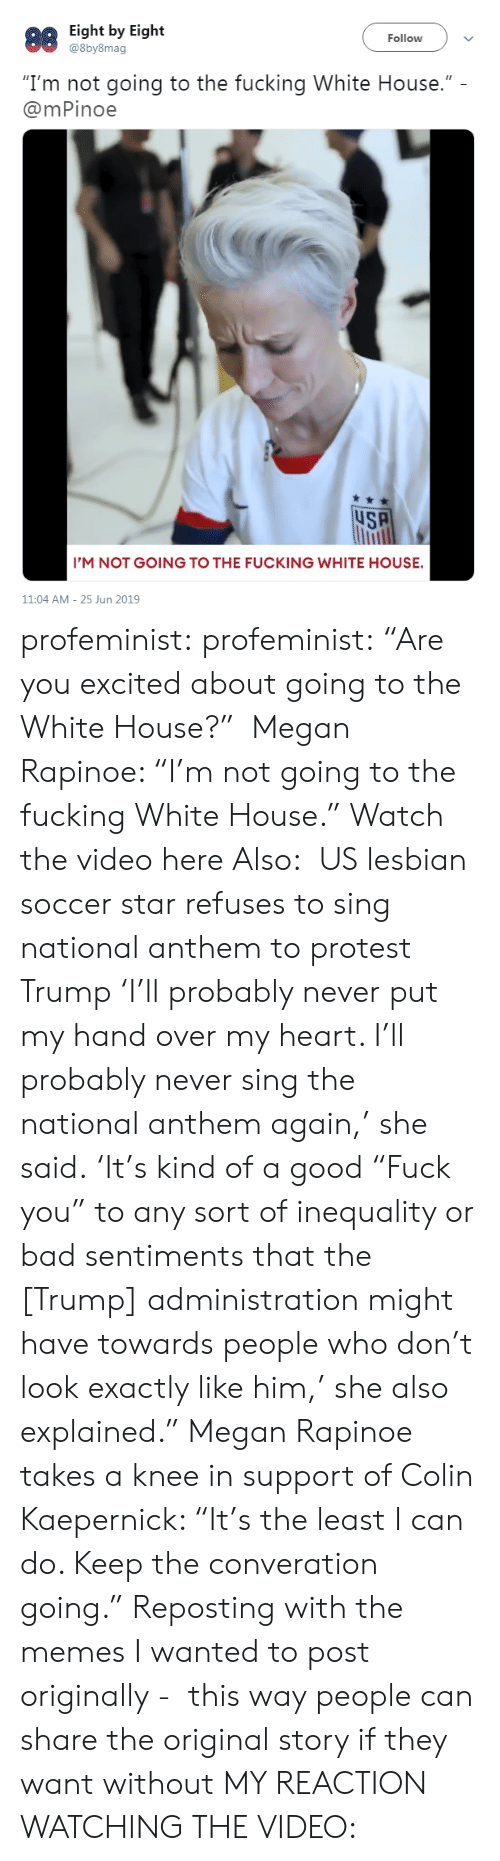 "Colin: Eight by Eight  @8by8mag  88  Follow  ""I'm not going to the fucking White House.""  @mPinoe  uSA  I'M NOT GOING TO THE FUCKING WHITE HOUSE.  11:04 AM 25 Jun 2019 profeminist: profeminist:  ""Are you excited about going to the White House?""  Megan Rapinoe: ""I'm not going to the fucking White House."" Watch the video here  Also:  US lesbian soccer star refuses to sing national anthem to protest Trump 'I'll probably never put my hand over my heart. I'll probably never sing the national anthem again,' she said. 'It's kind of a good ""Fuck you"" to any sort of inequality or bad sentiments that the [Trump] administration might have towards people who don't look exactly like him,' she also explained."" Megan Rapinoe takes a knee in support of Colin Kaepernick: ""It's the least I can do. Keep the converation going.""  Reposting with the memes I wanted to post originally -  this way people can share the original story if they want without MY REACTION WATCHING THE VIDEO:"